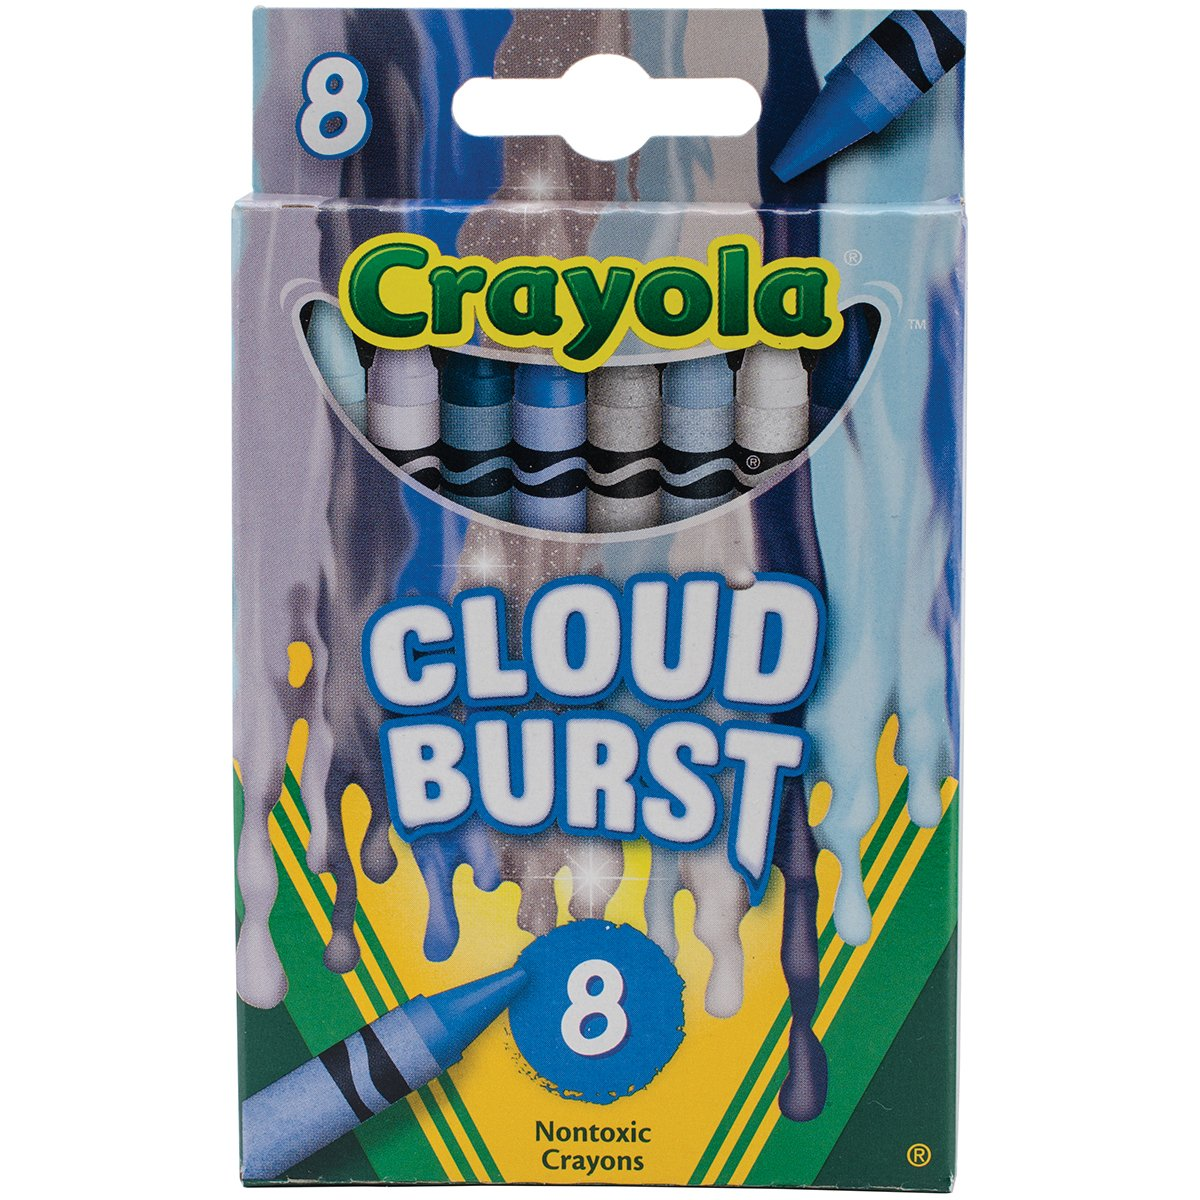 Crayola Meltdown Crayons 8/pkg, Cloud Burst